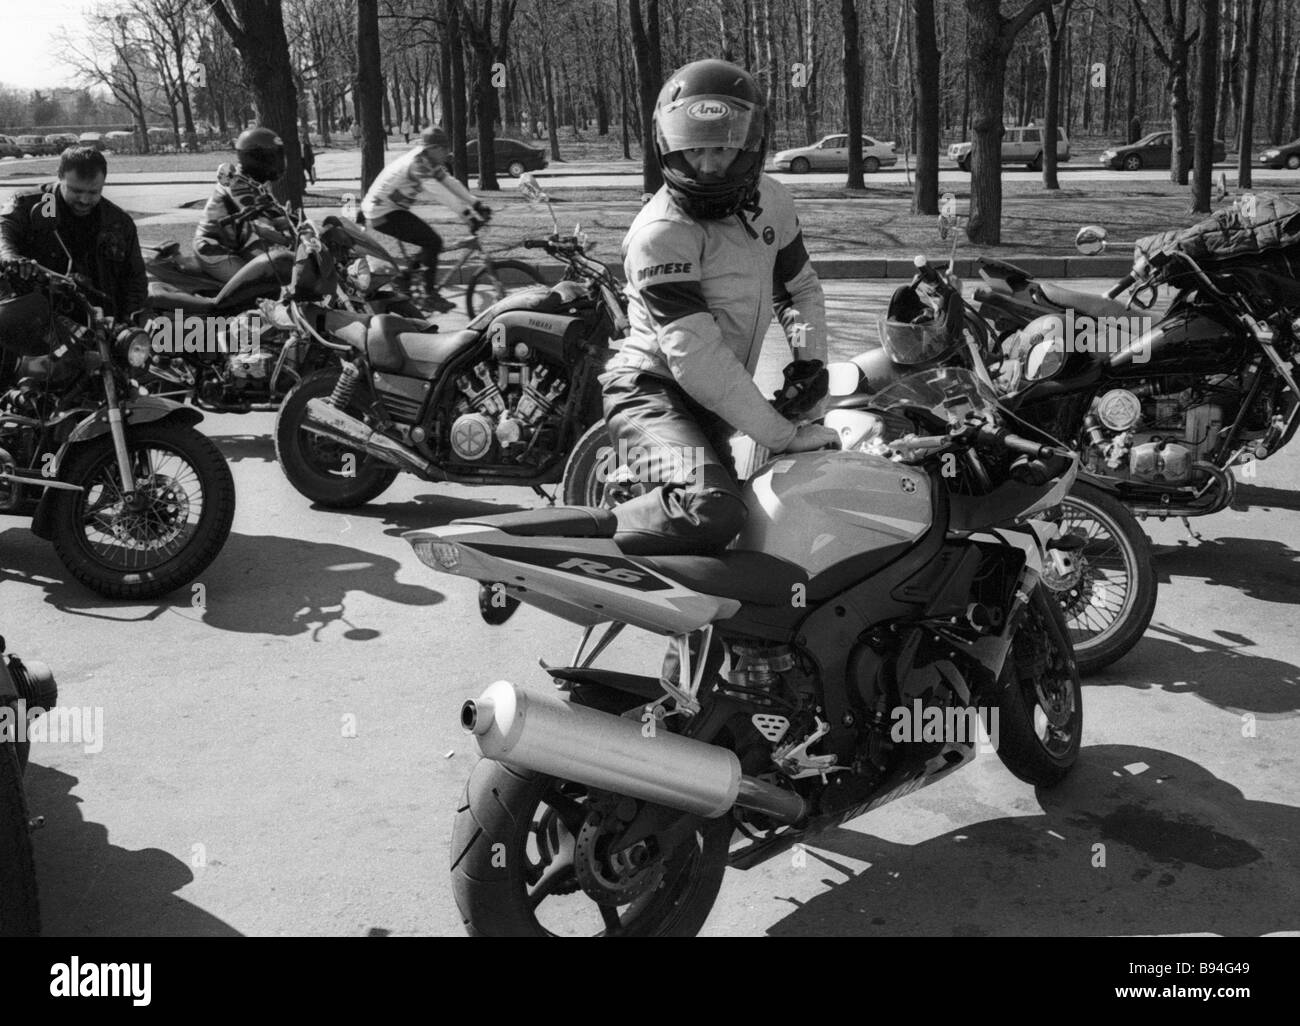 Bikers - Stock Image